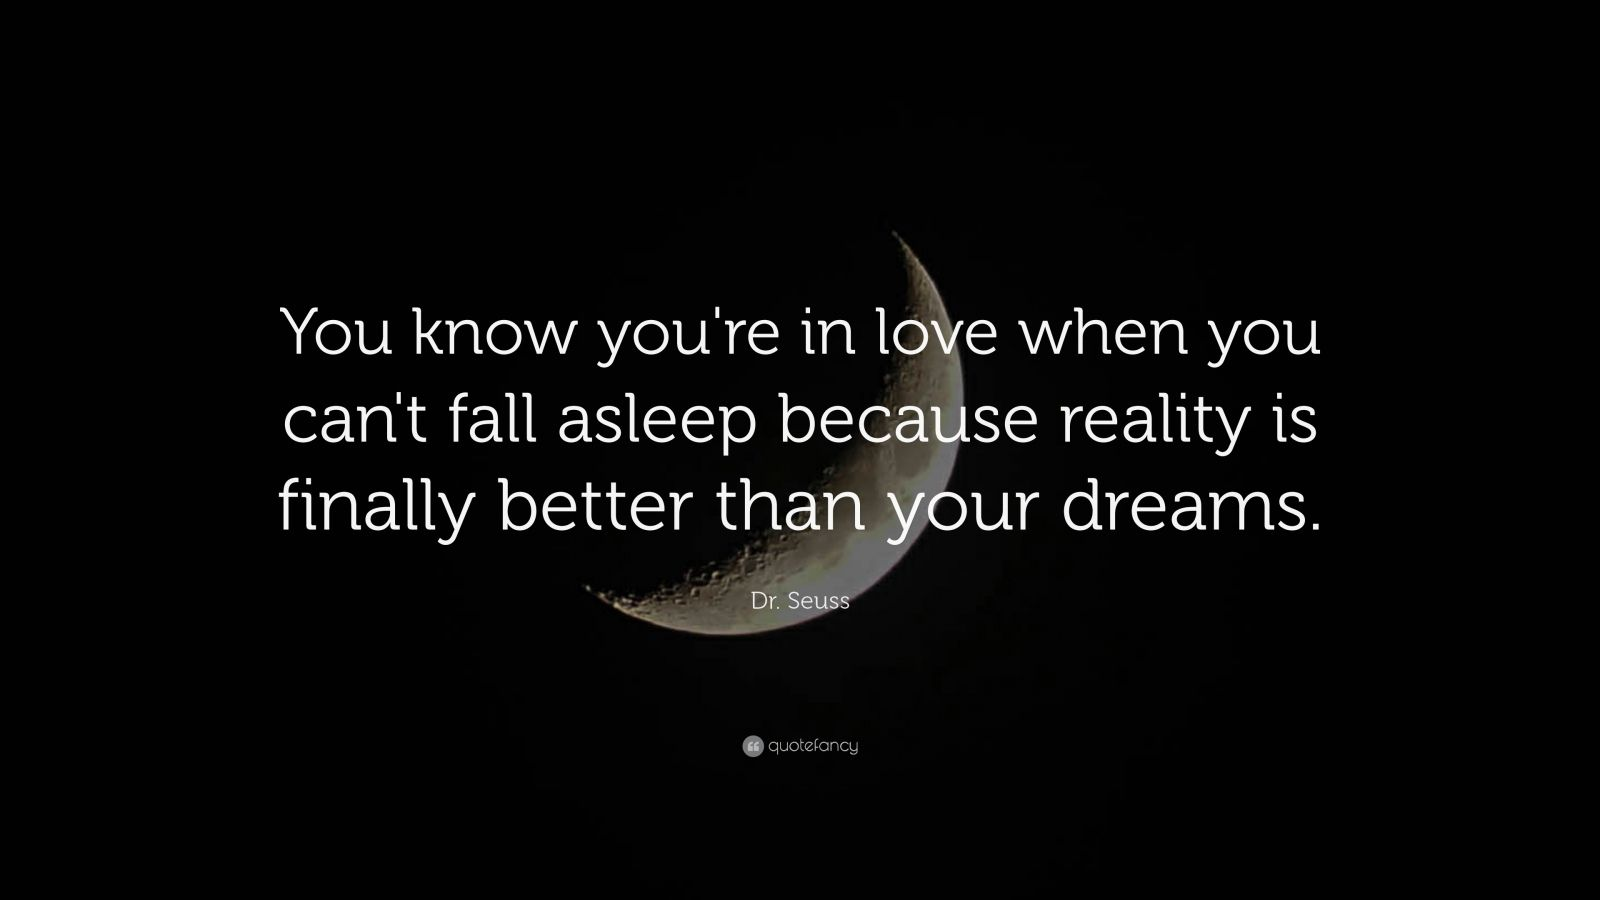 """You know you're in love when you can't fall asleep because reality is finally better than your dreams""- Dr.Seuss (1600 x 900)"